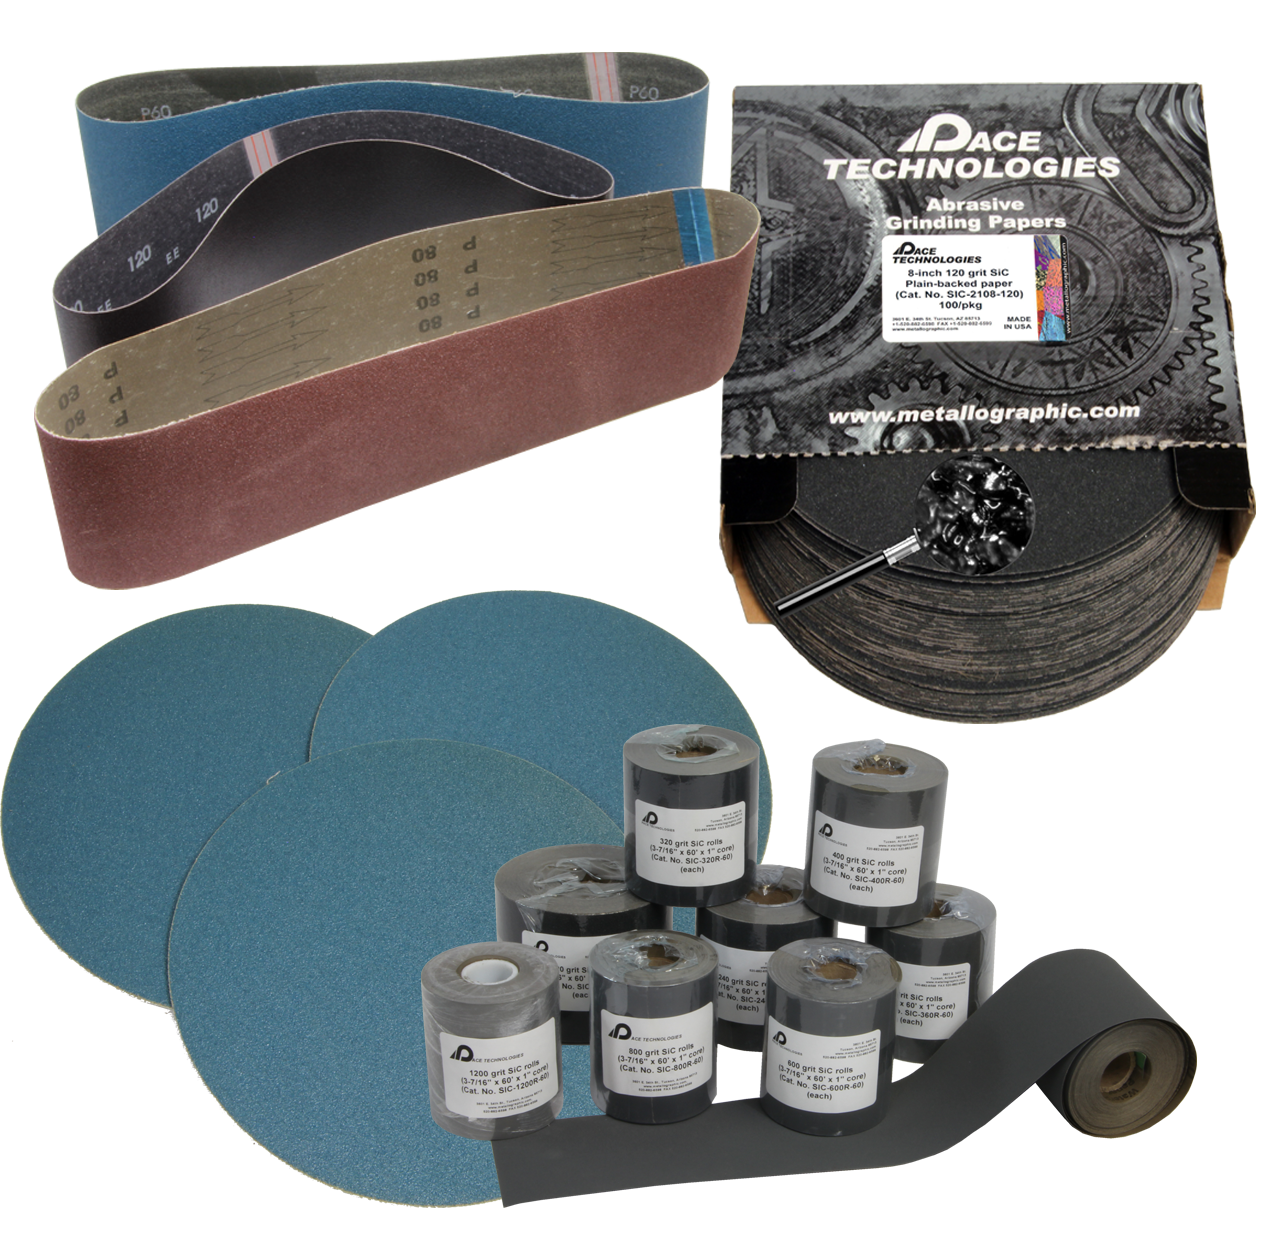 PACE Technologies metallographic grinding abrasives